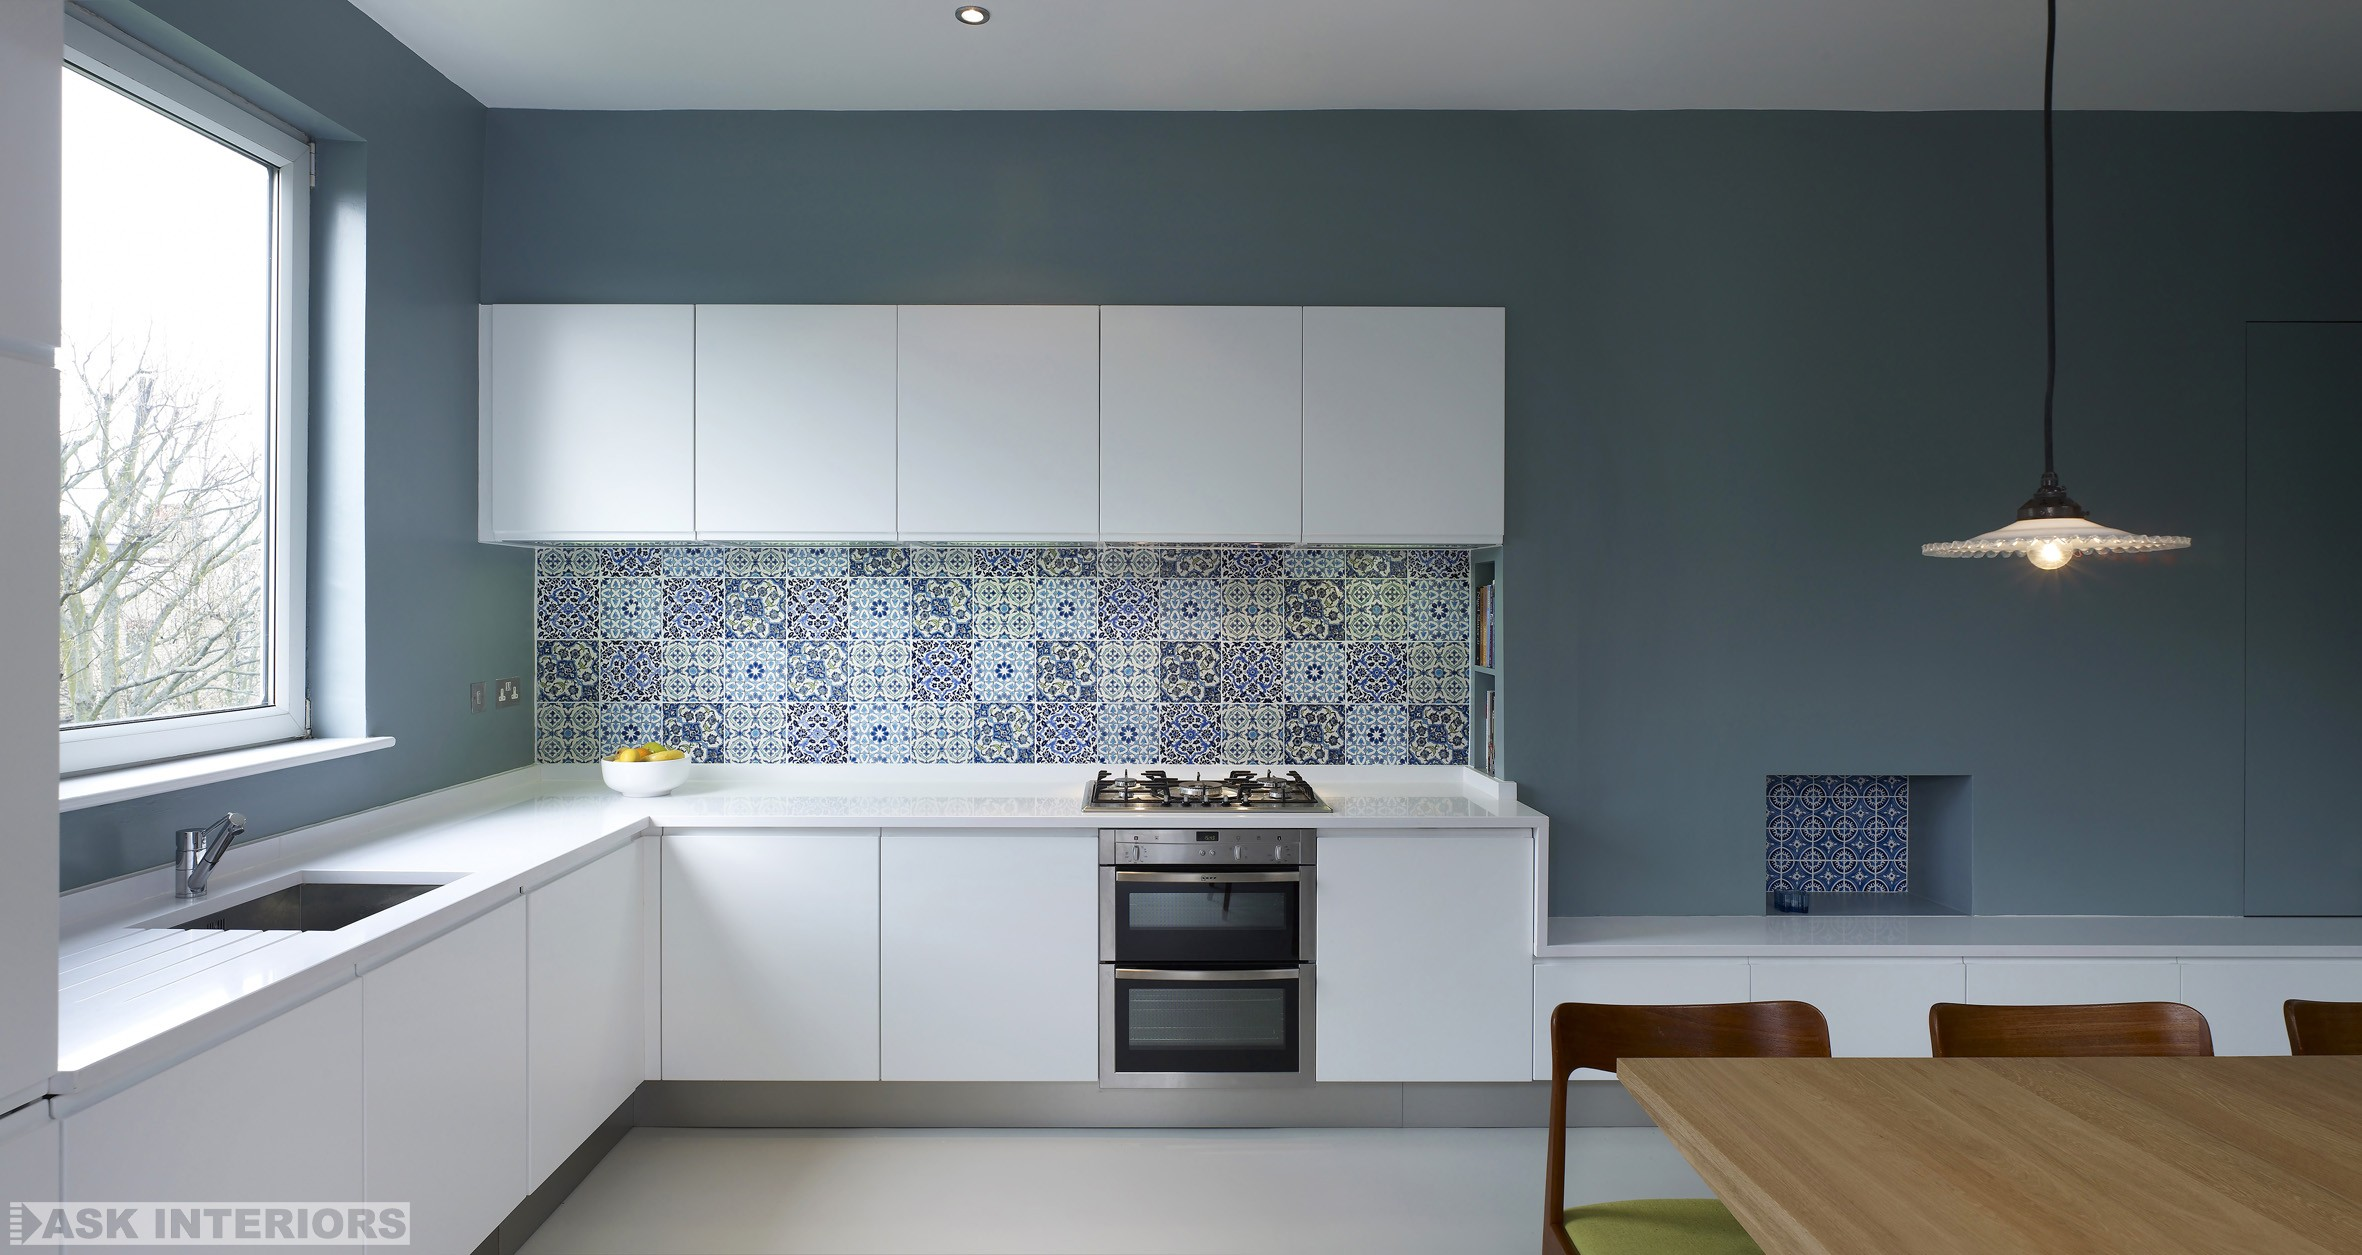 News ask interiors new builds conversions for Grand designs interior